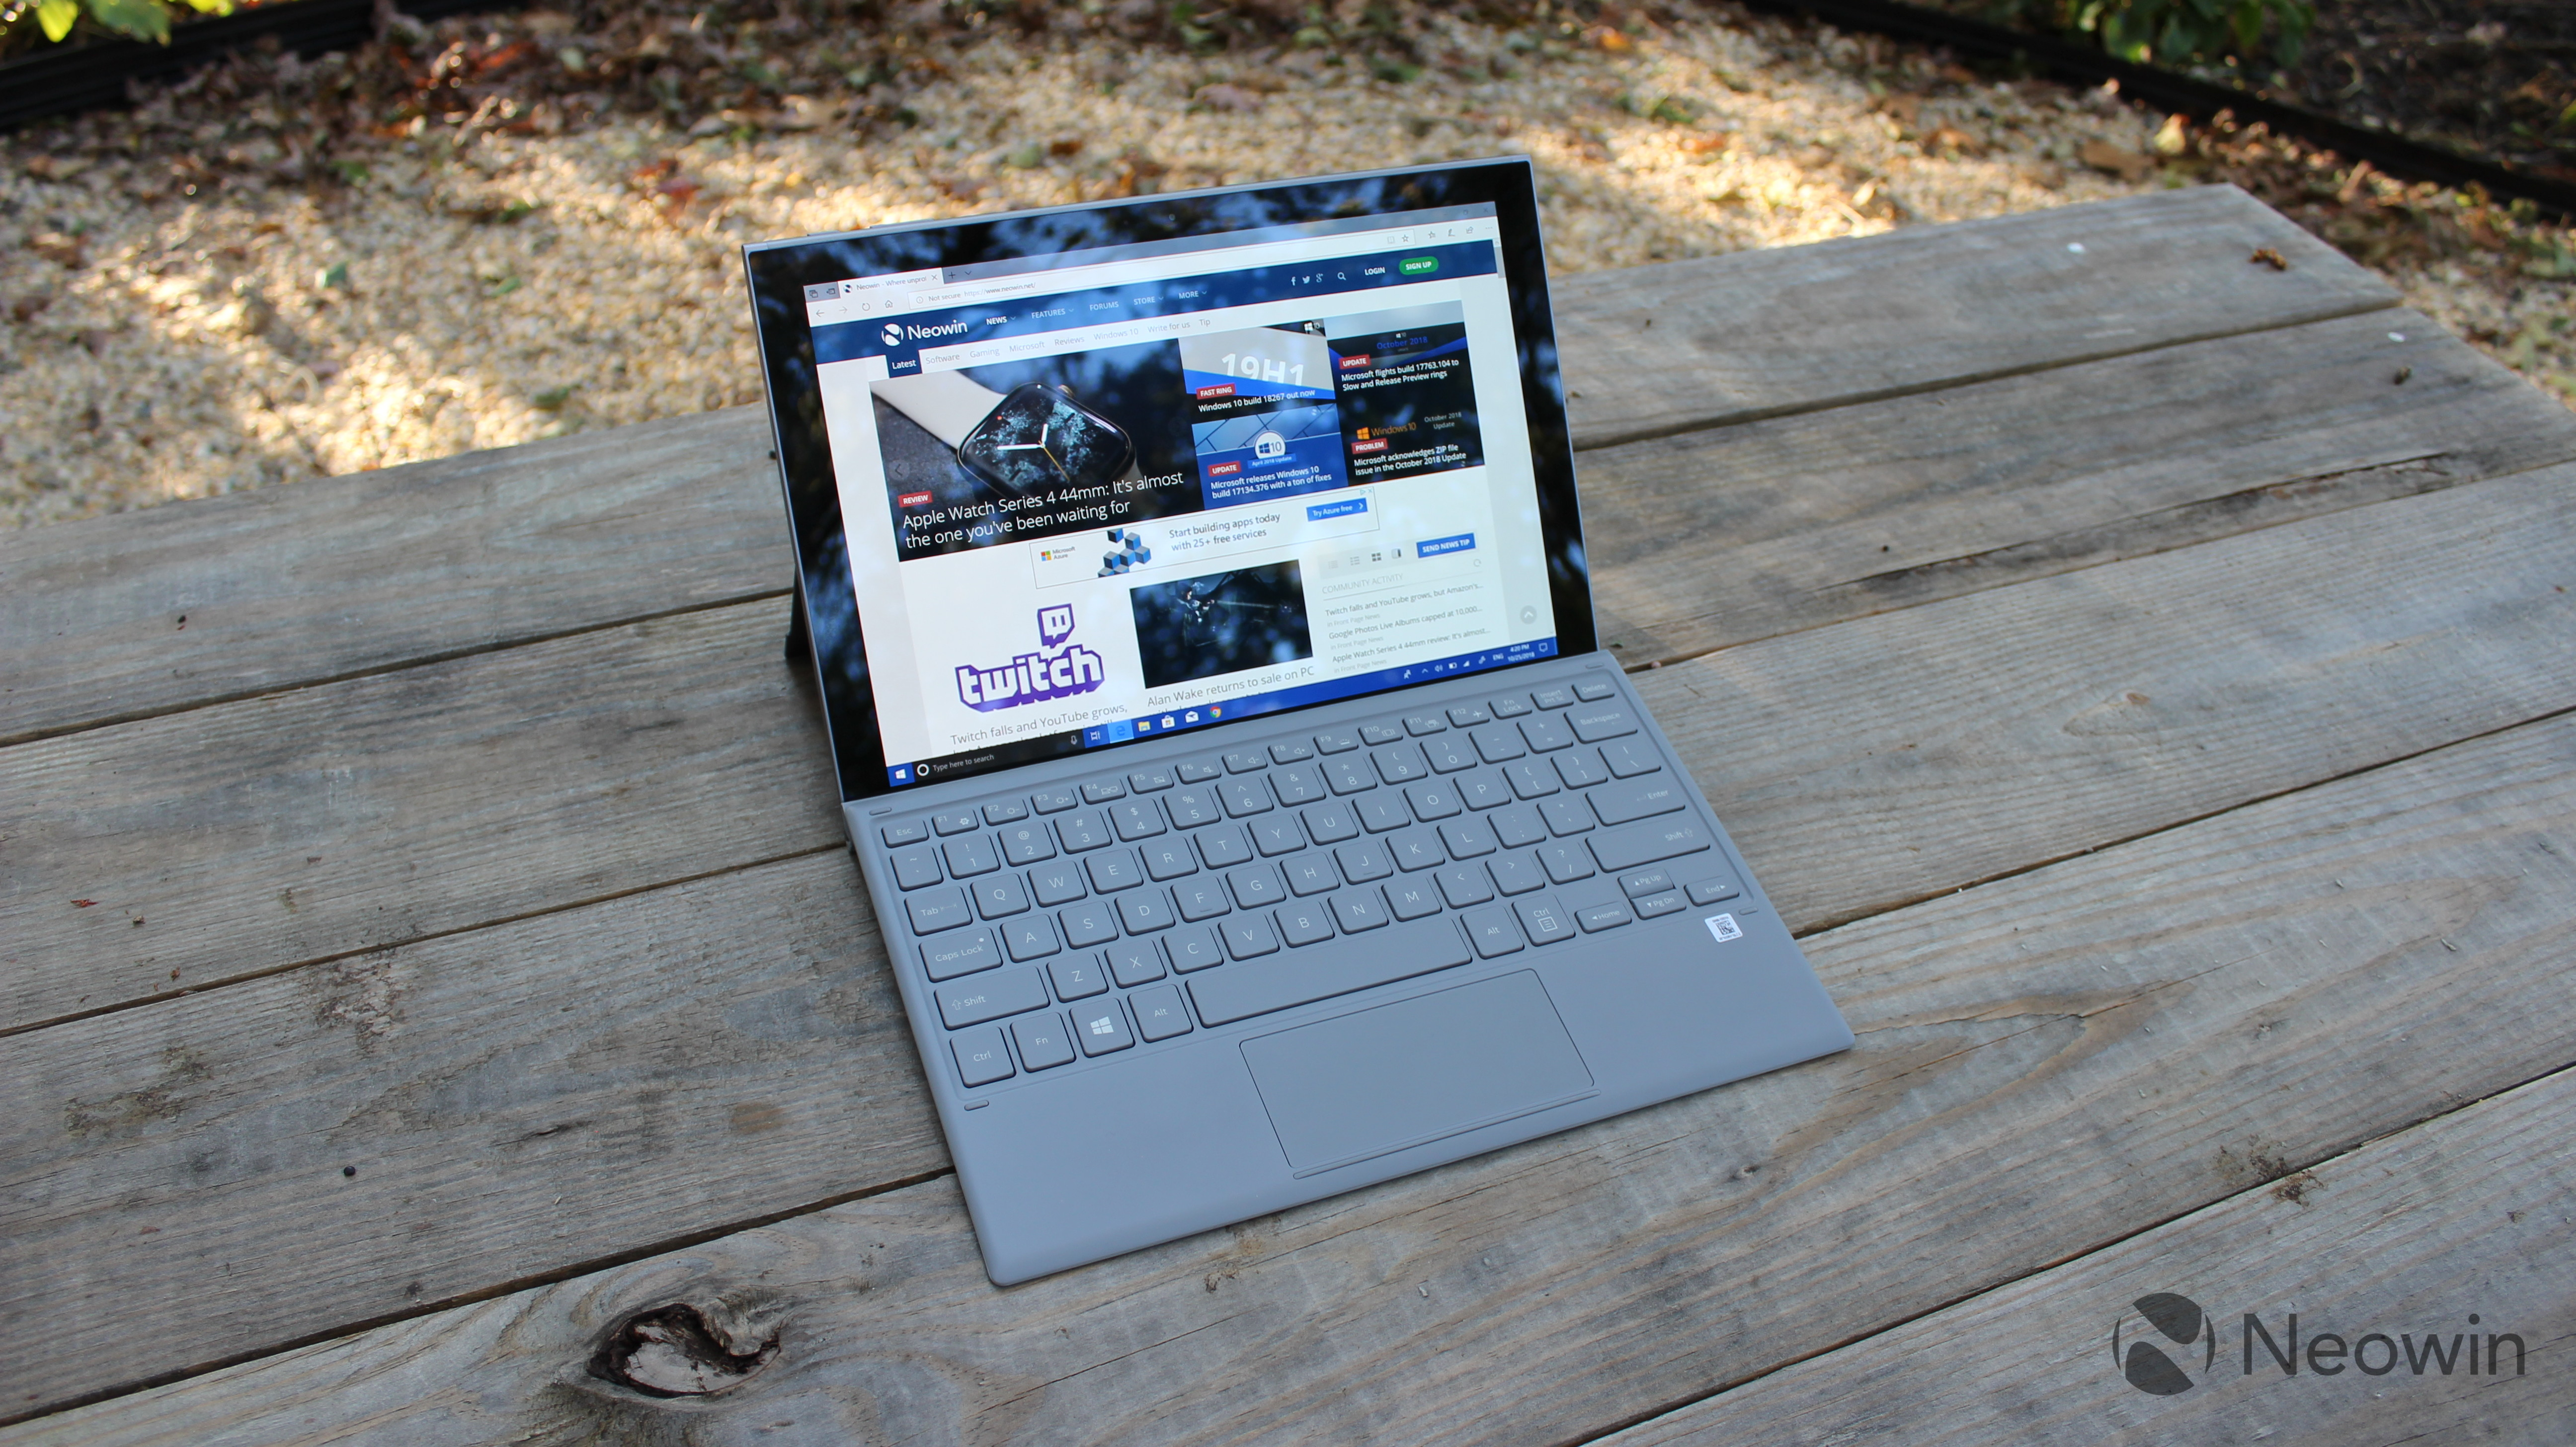 Samsung Galaxy Book2 review: Windows on ARM gets a lot better - Neowin